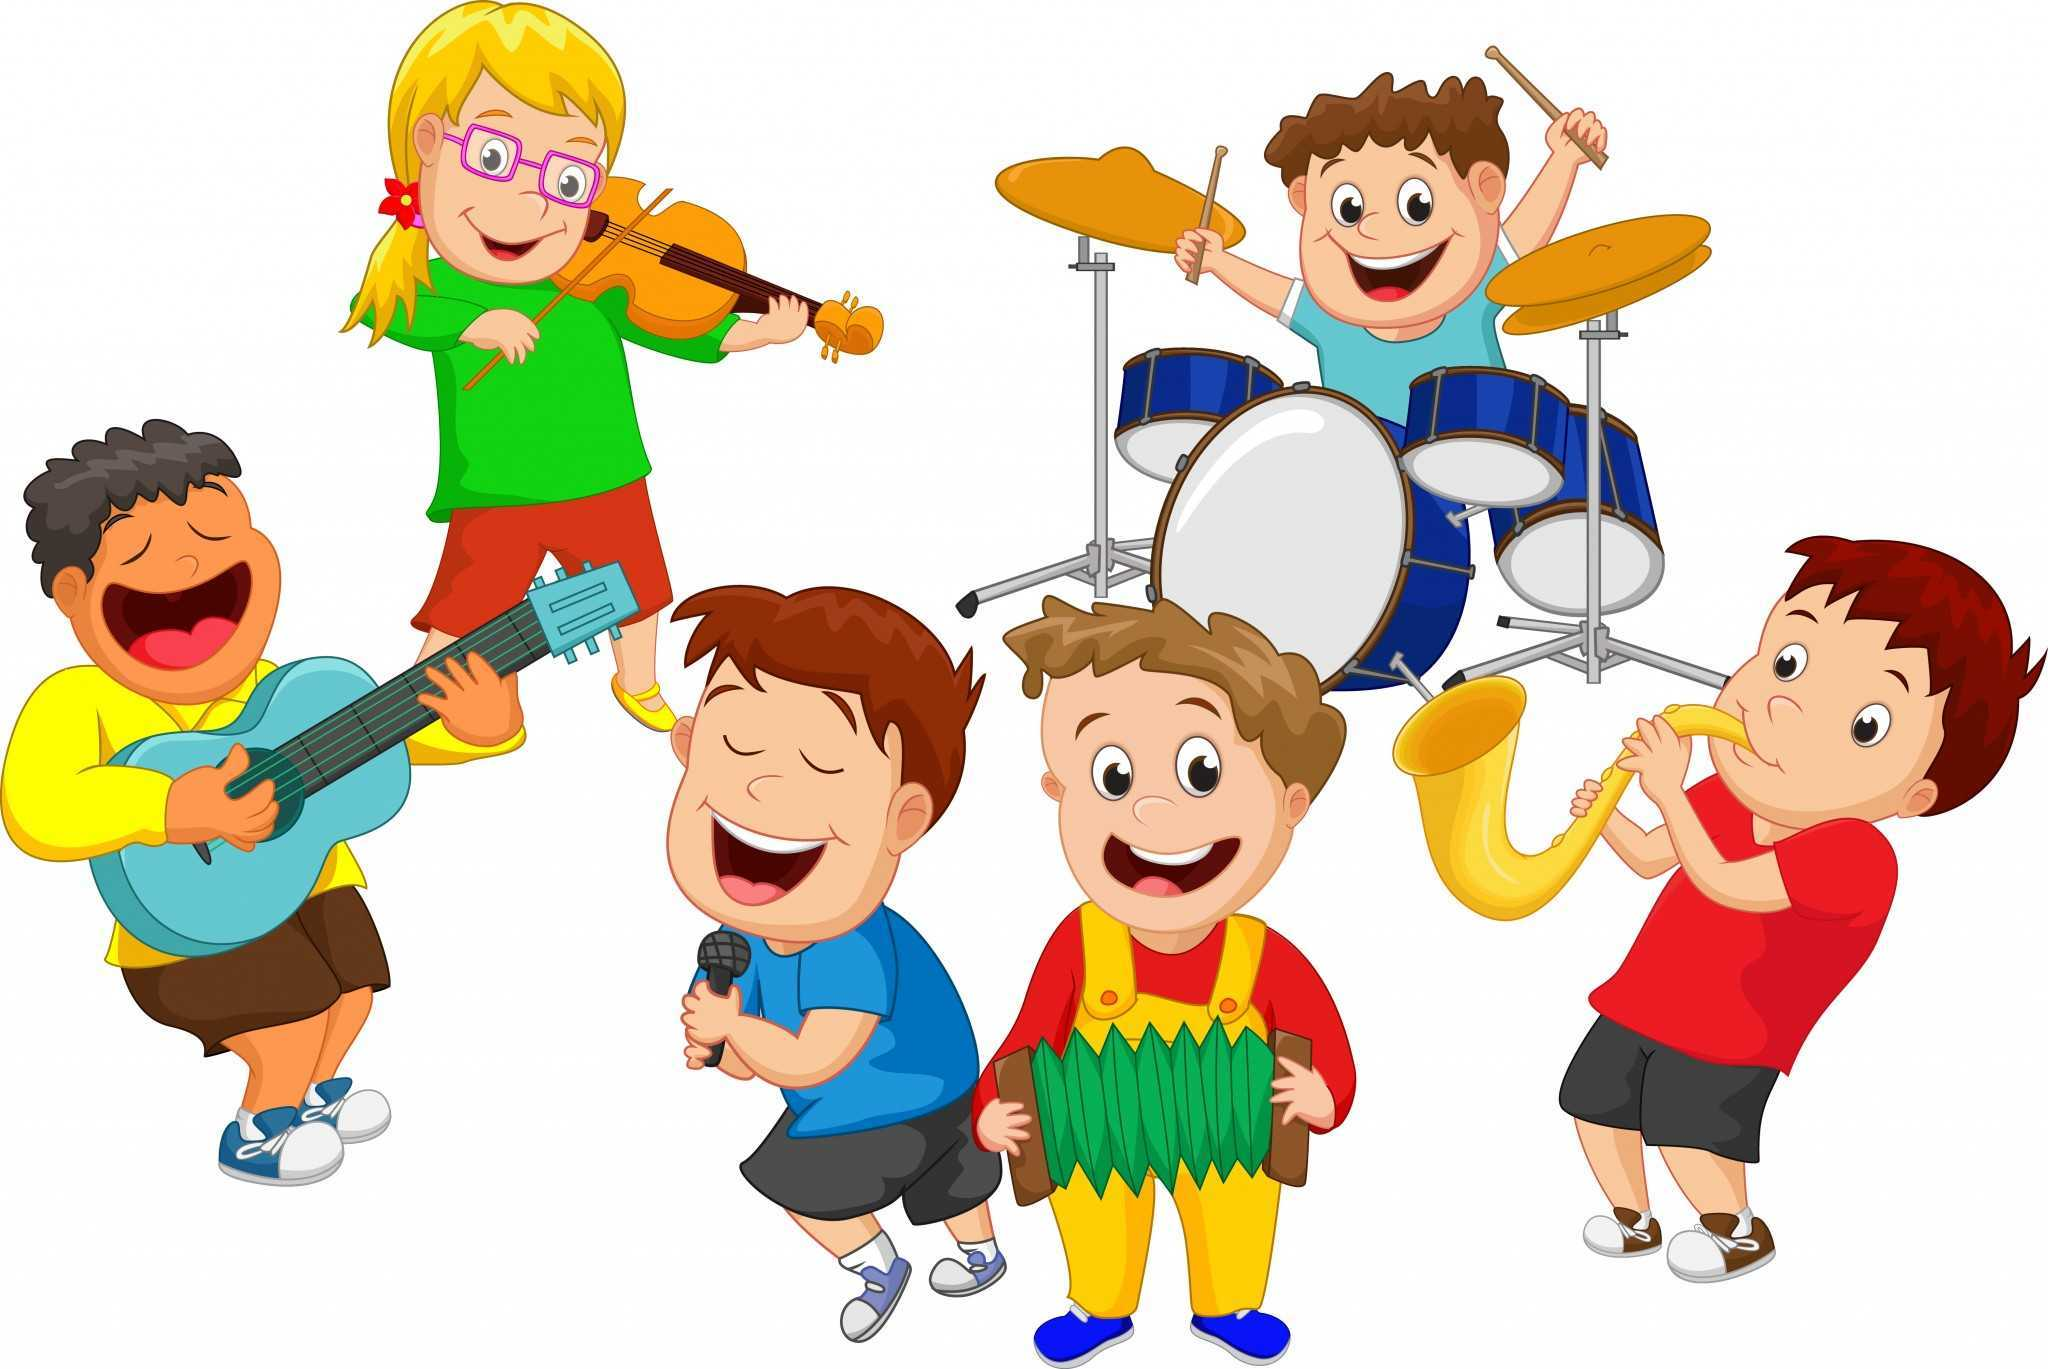 music children education clipart wordplay cartoon five benefits musical lab research current guide use preferences language social